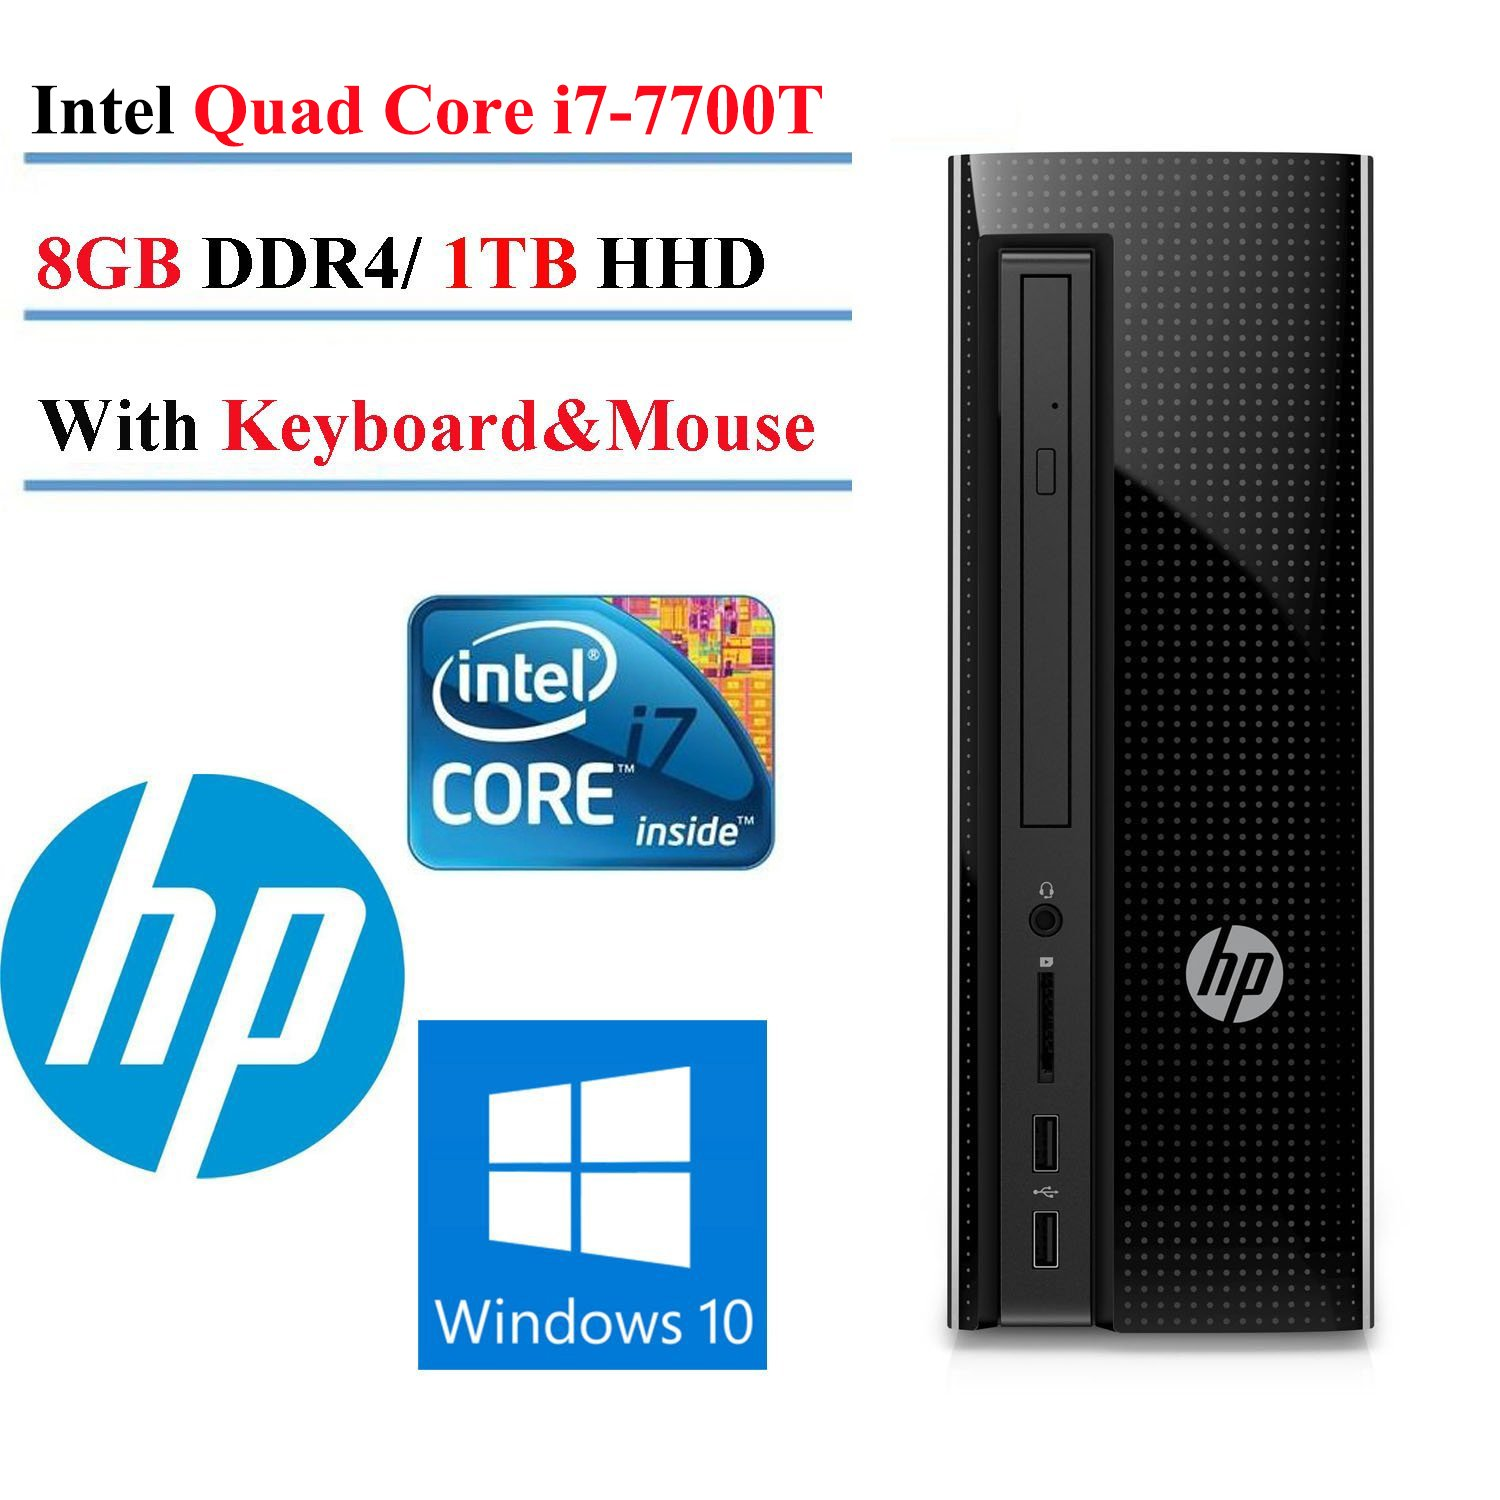 HP Slimline High Performance Mini Desktop (2017 Newest Model), Intel Core i7-7700T Processor 2.9 GHz, 8GB DDR4 2400 MHz, 1TB 7200rpm HDD, HDMI, DVD-RW, 802.11b/g/n, Bluetooth, Windows 10